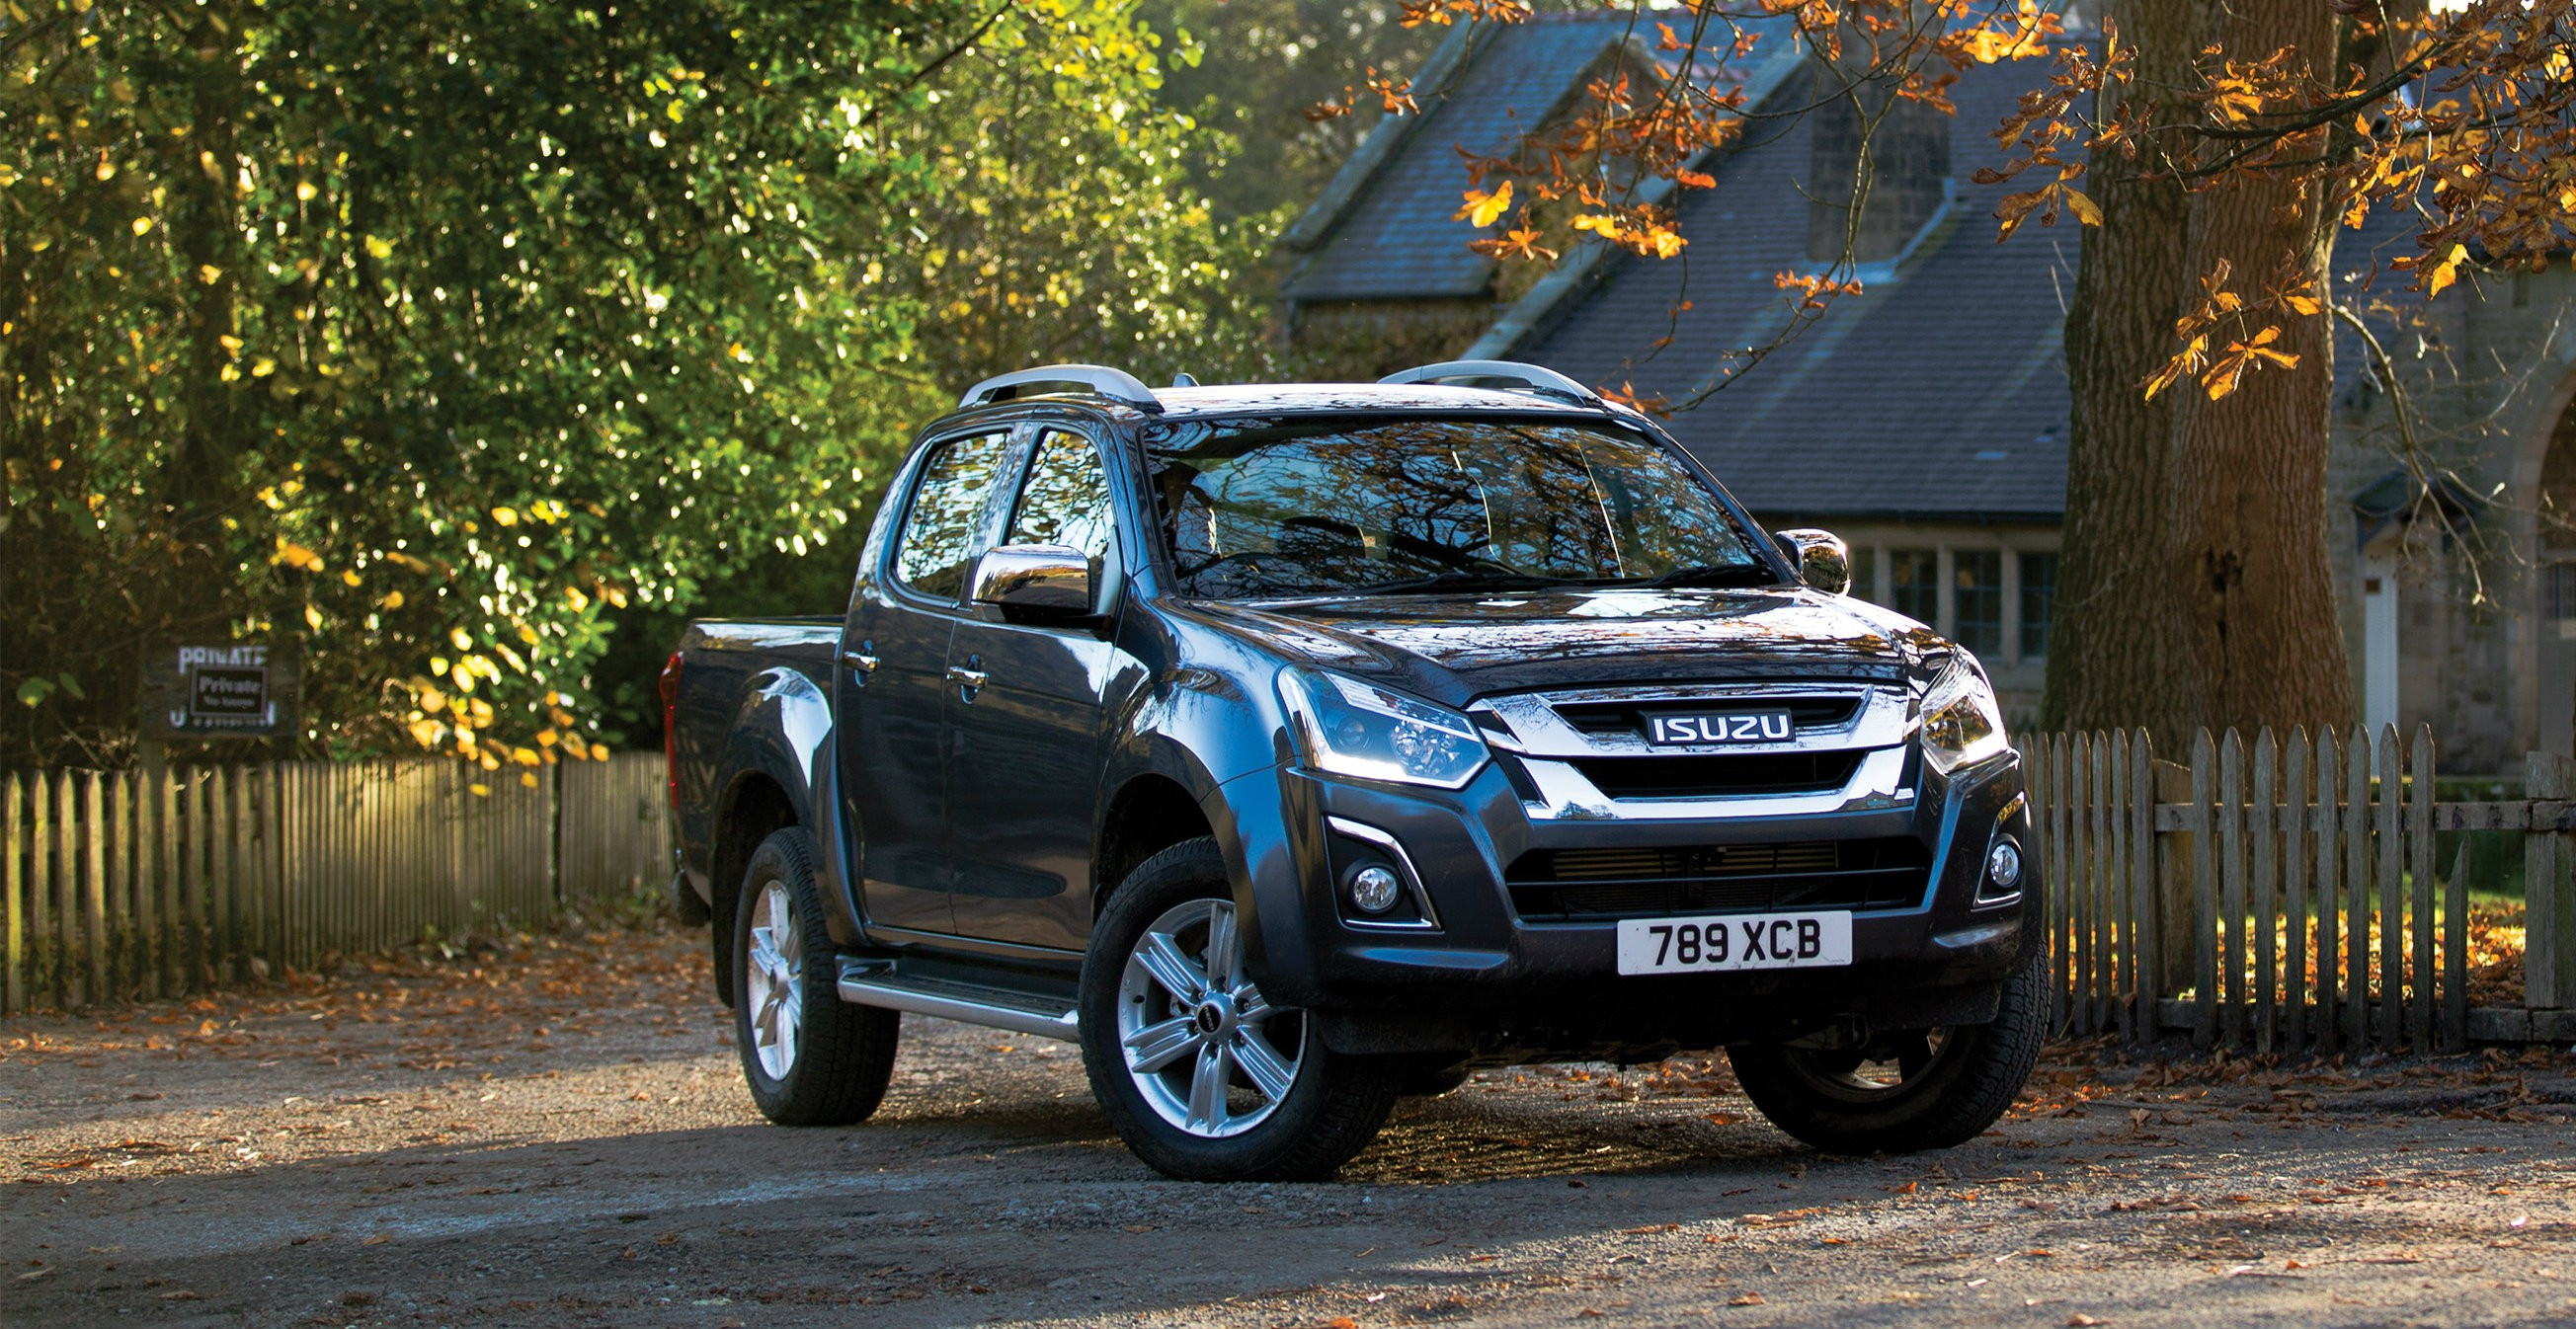 2017 Isuzu D-Max Price Announced For The UK: GBP 15,749 ...